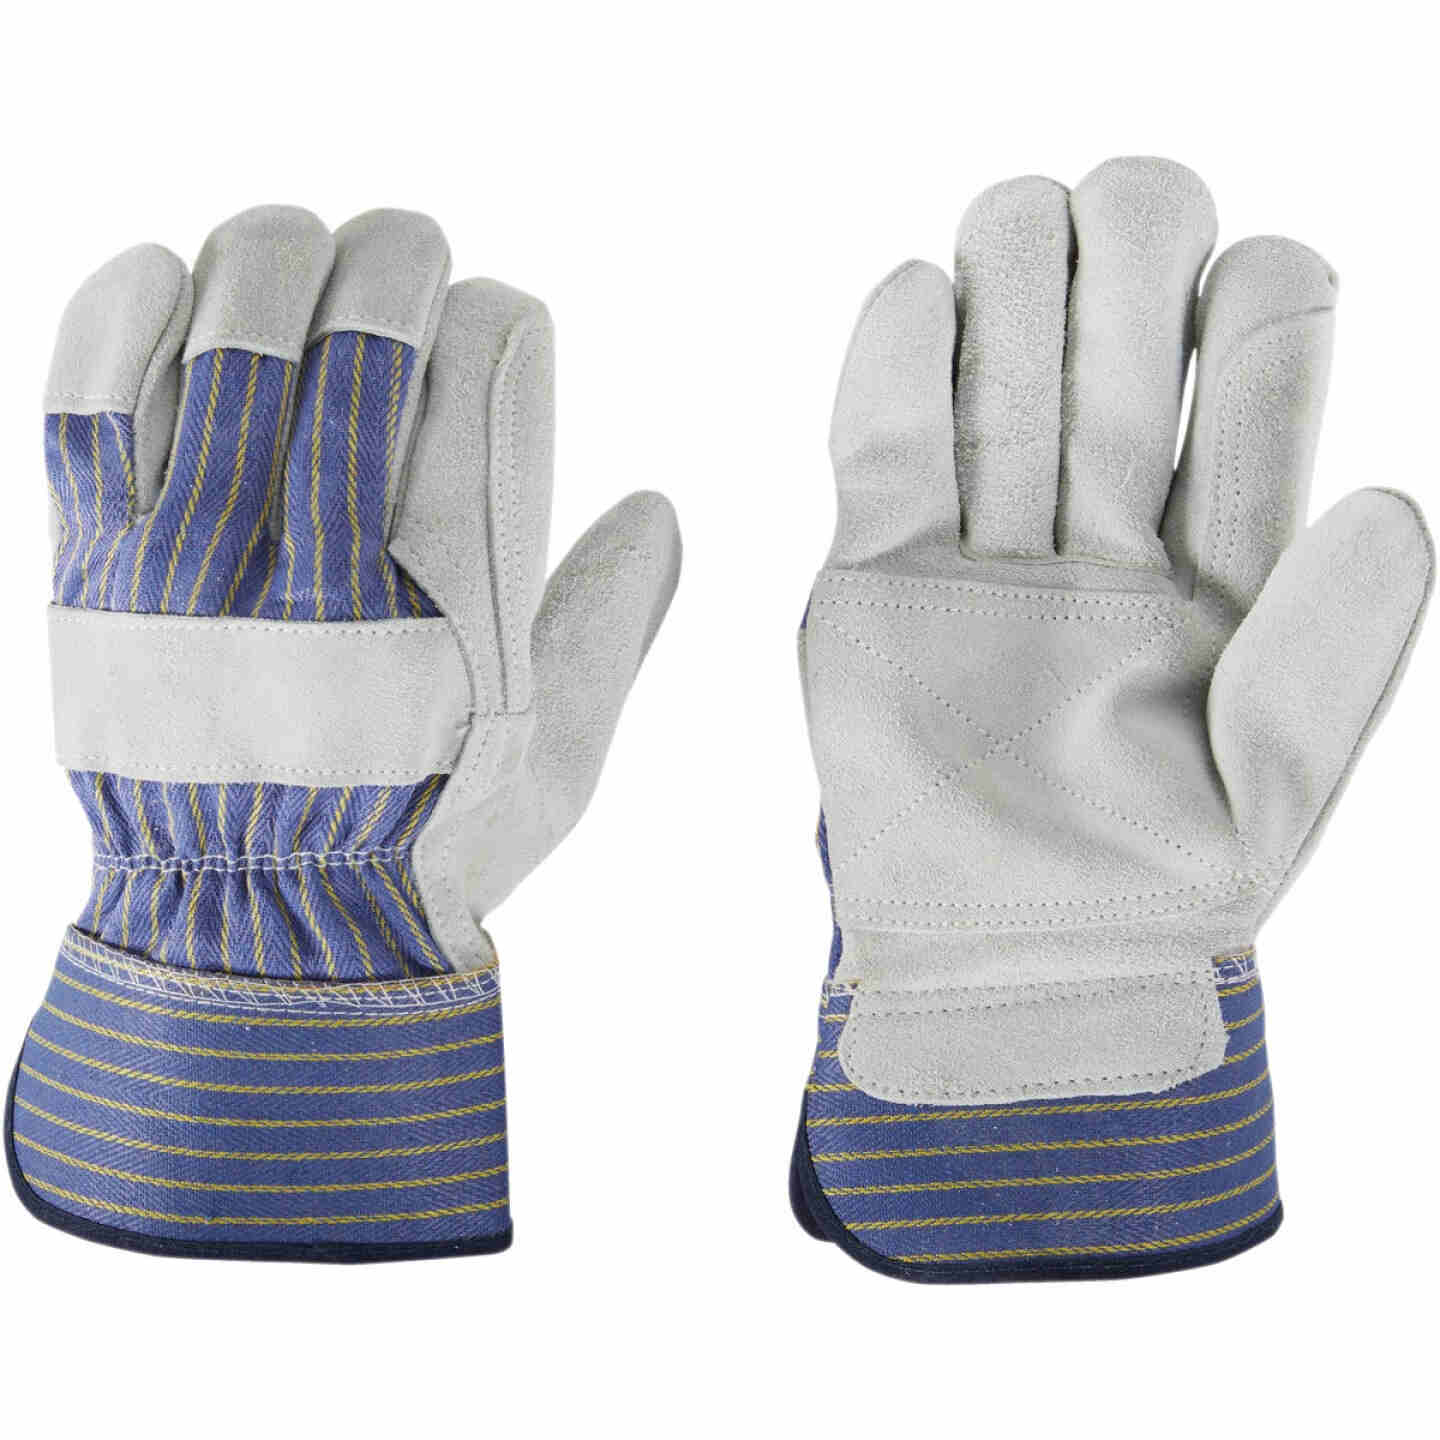 Do it Best Men's Large Leather Palm Work Glove Image 3